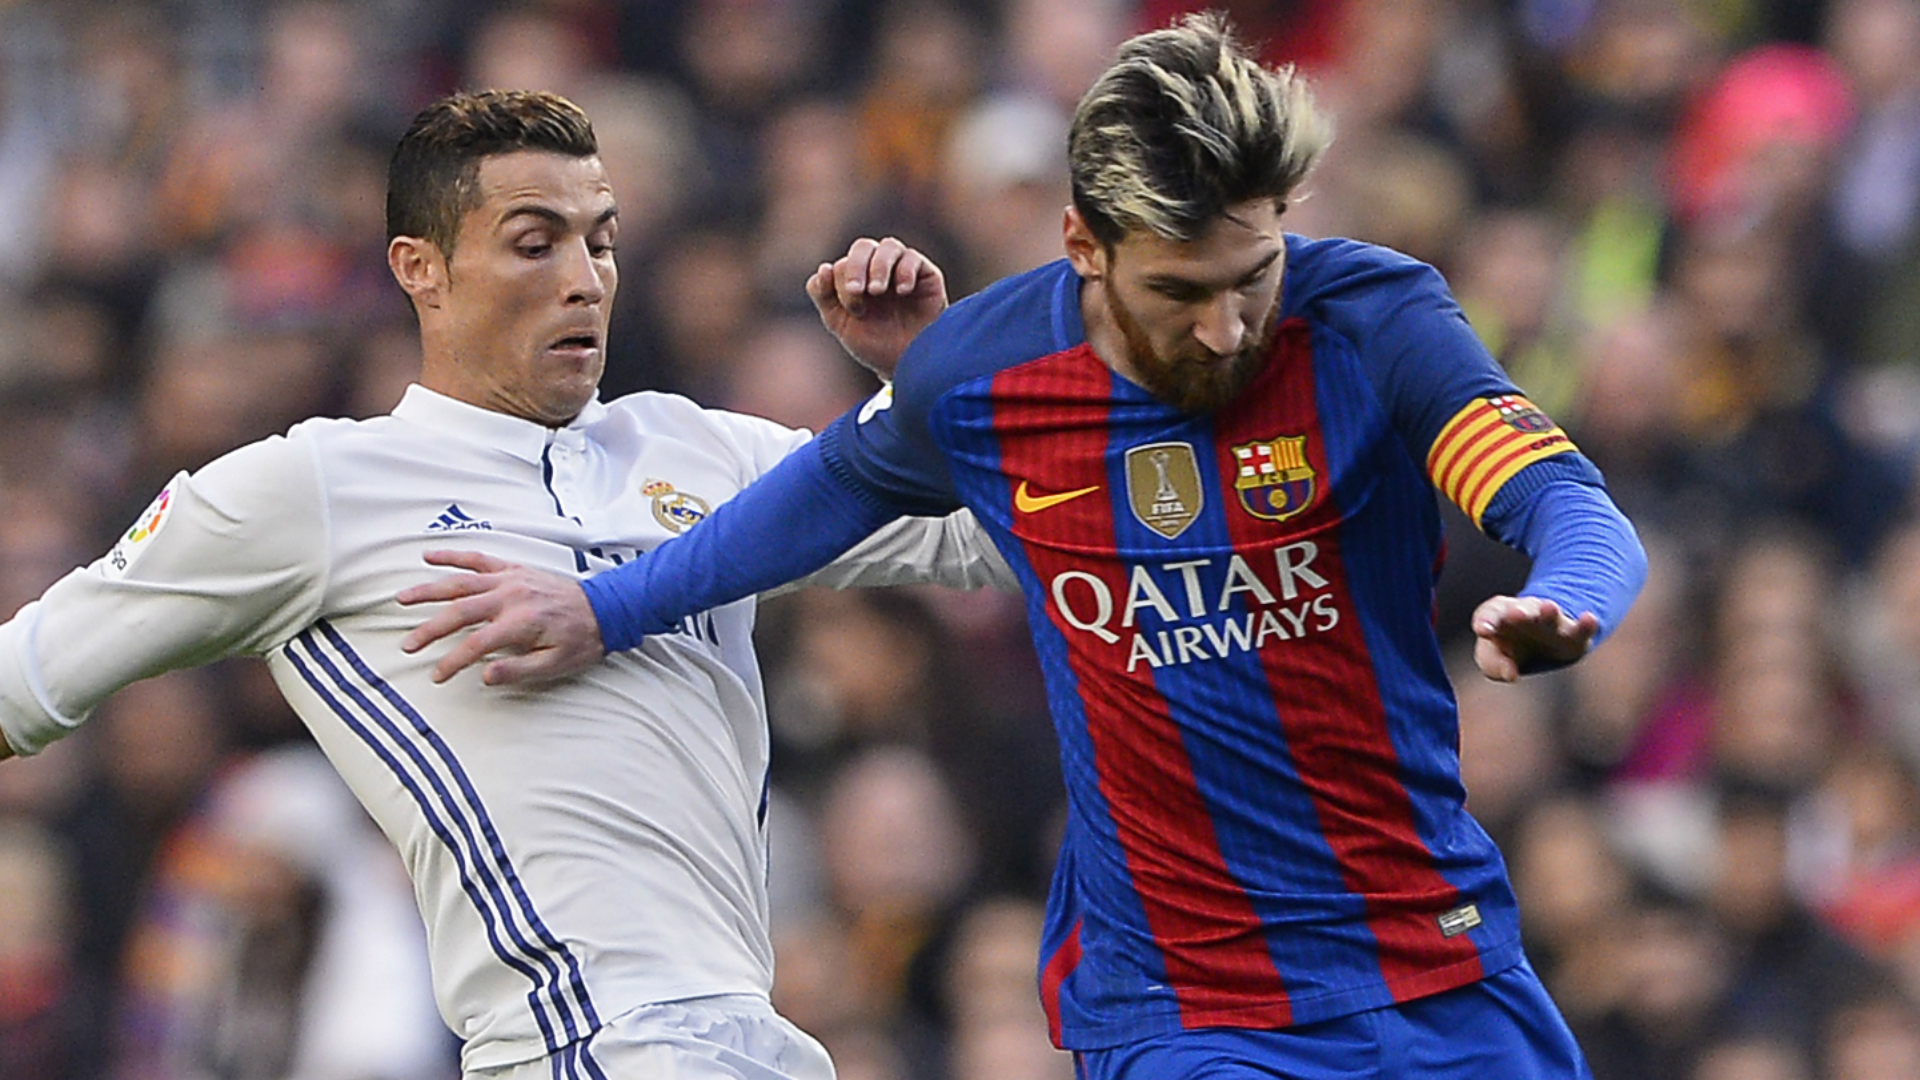 Ronaldo has better abs but Messi is ahead of everyone - Clemente